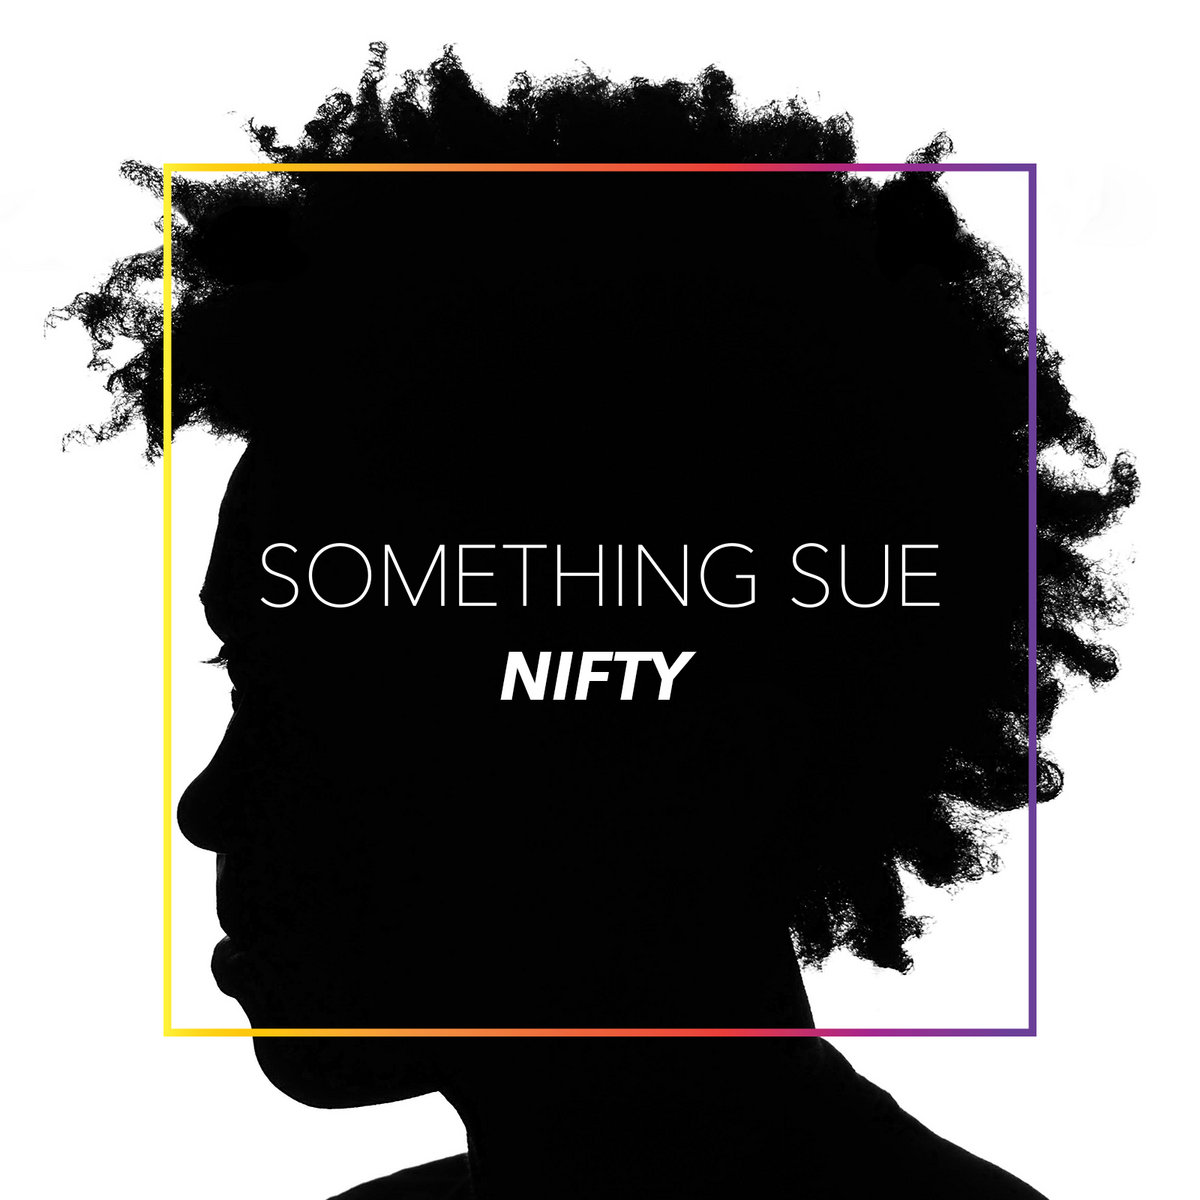 Nifty by Something Sue